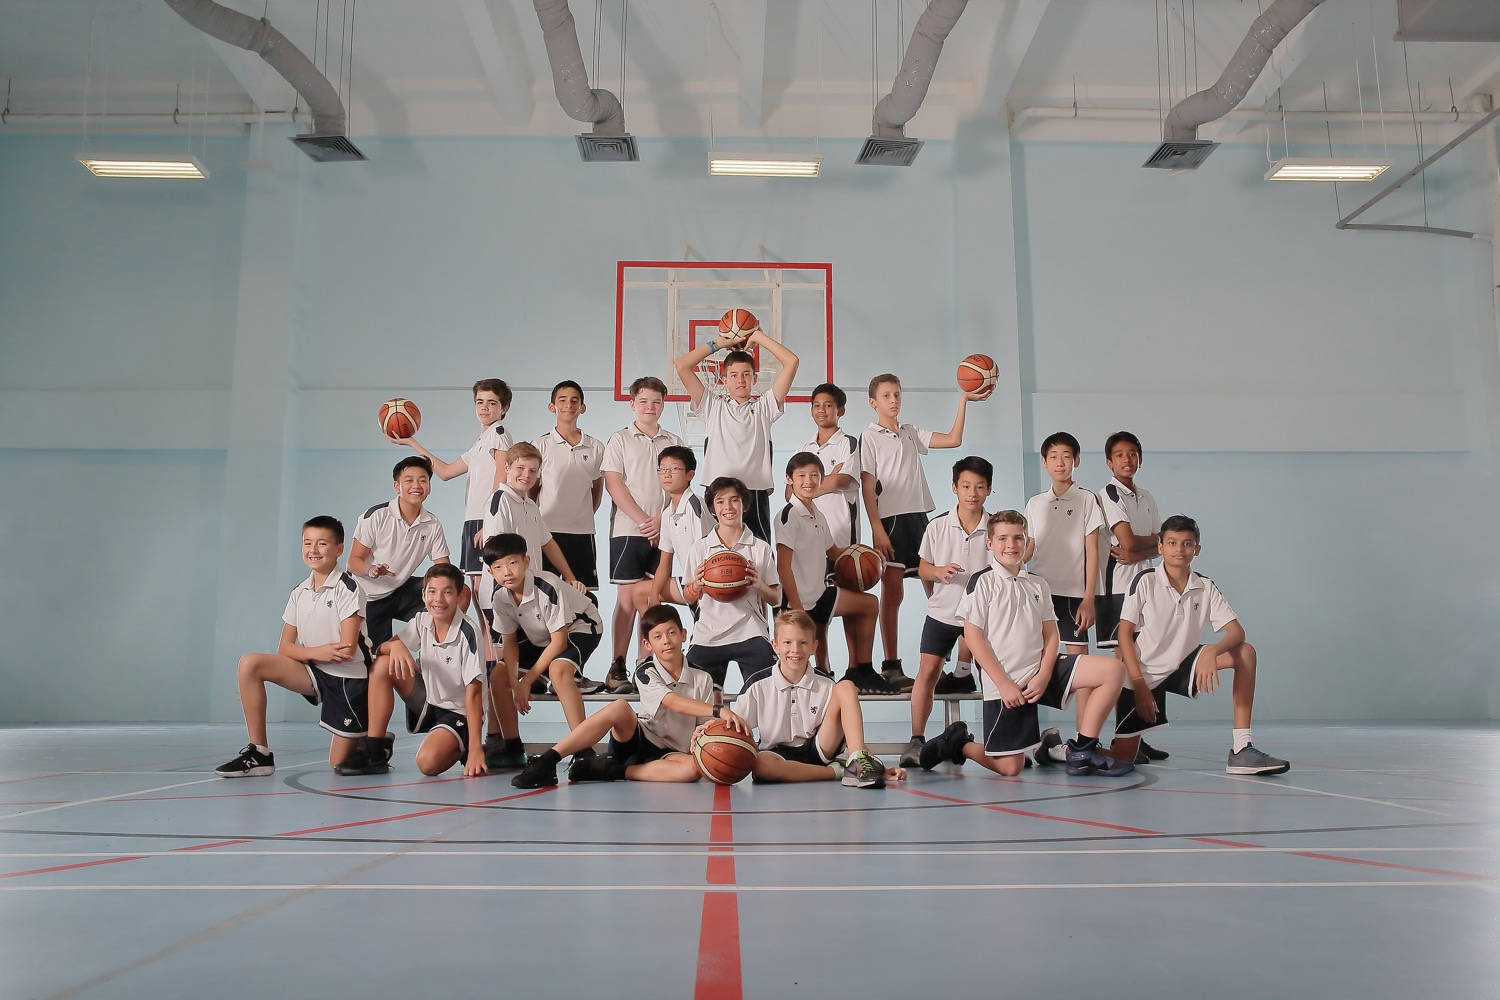 BSKL Sports Group Pose (Basketball Team)